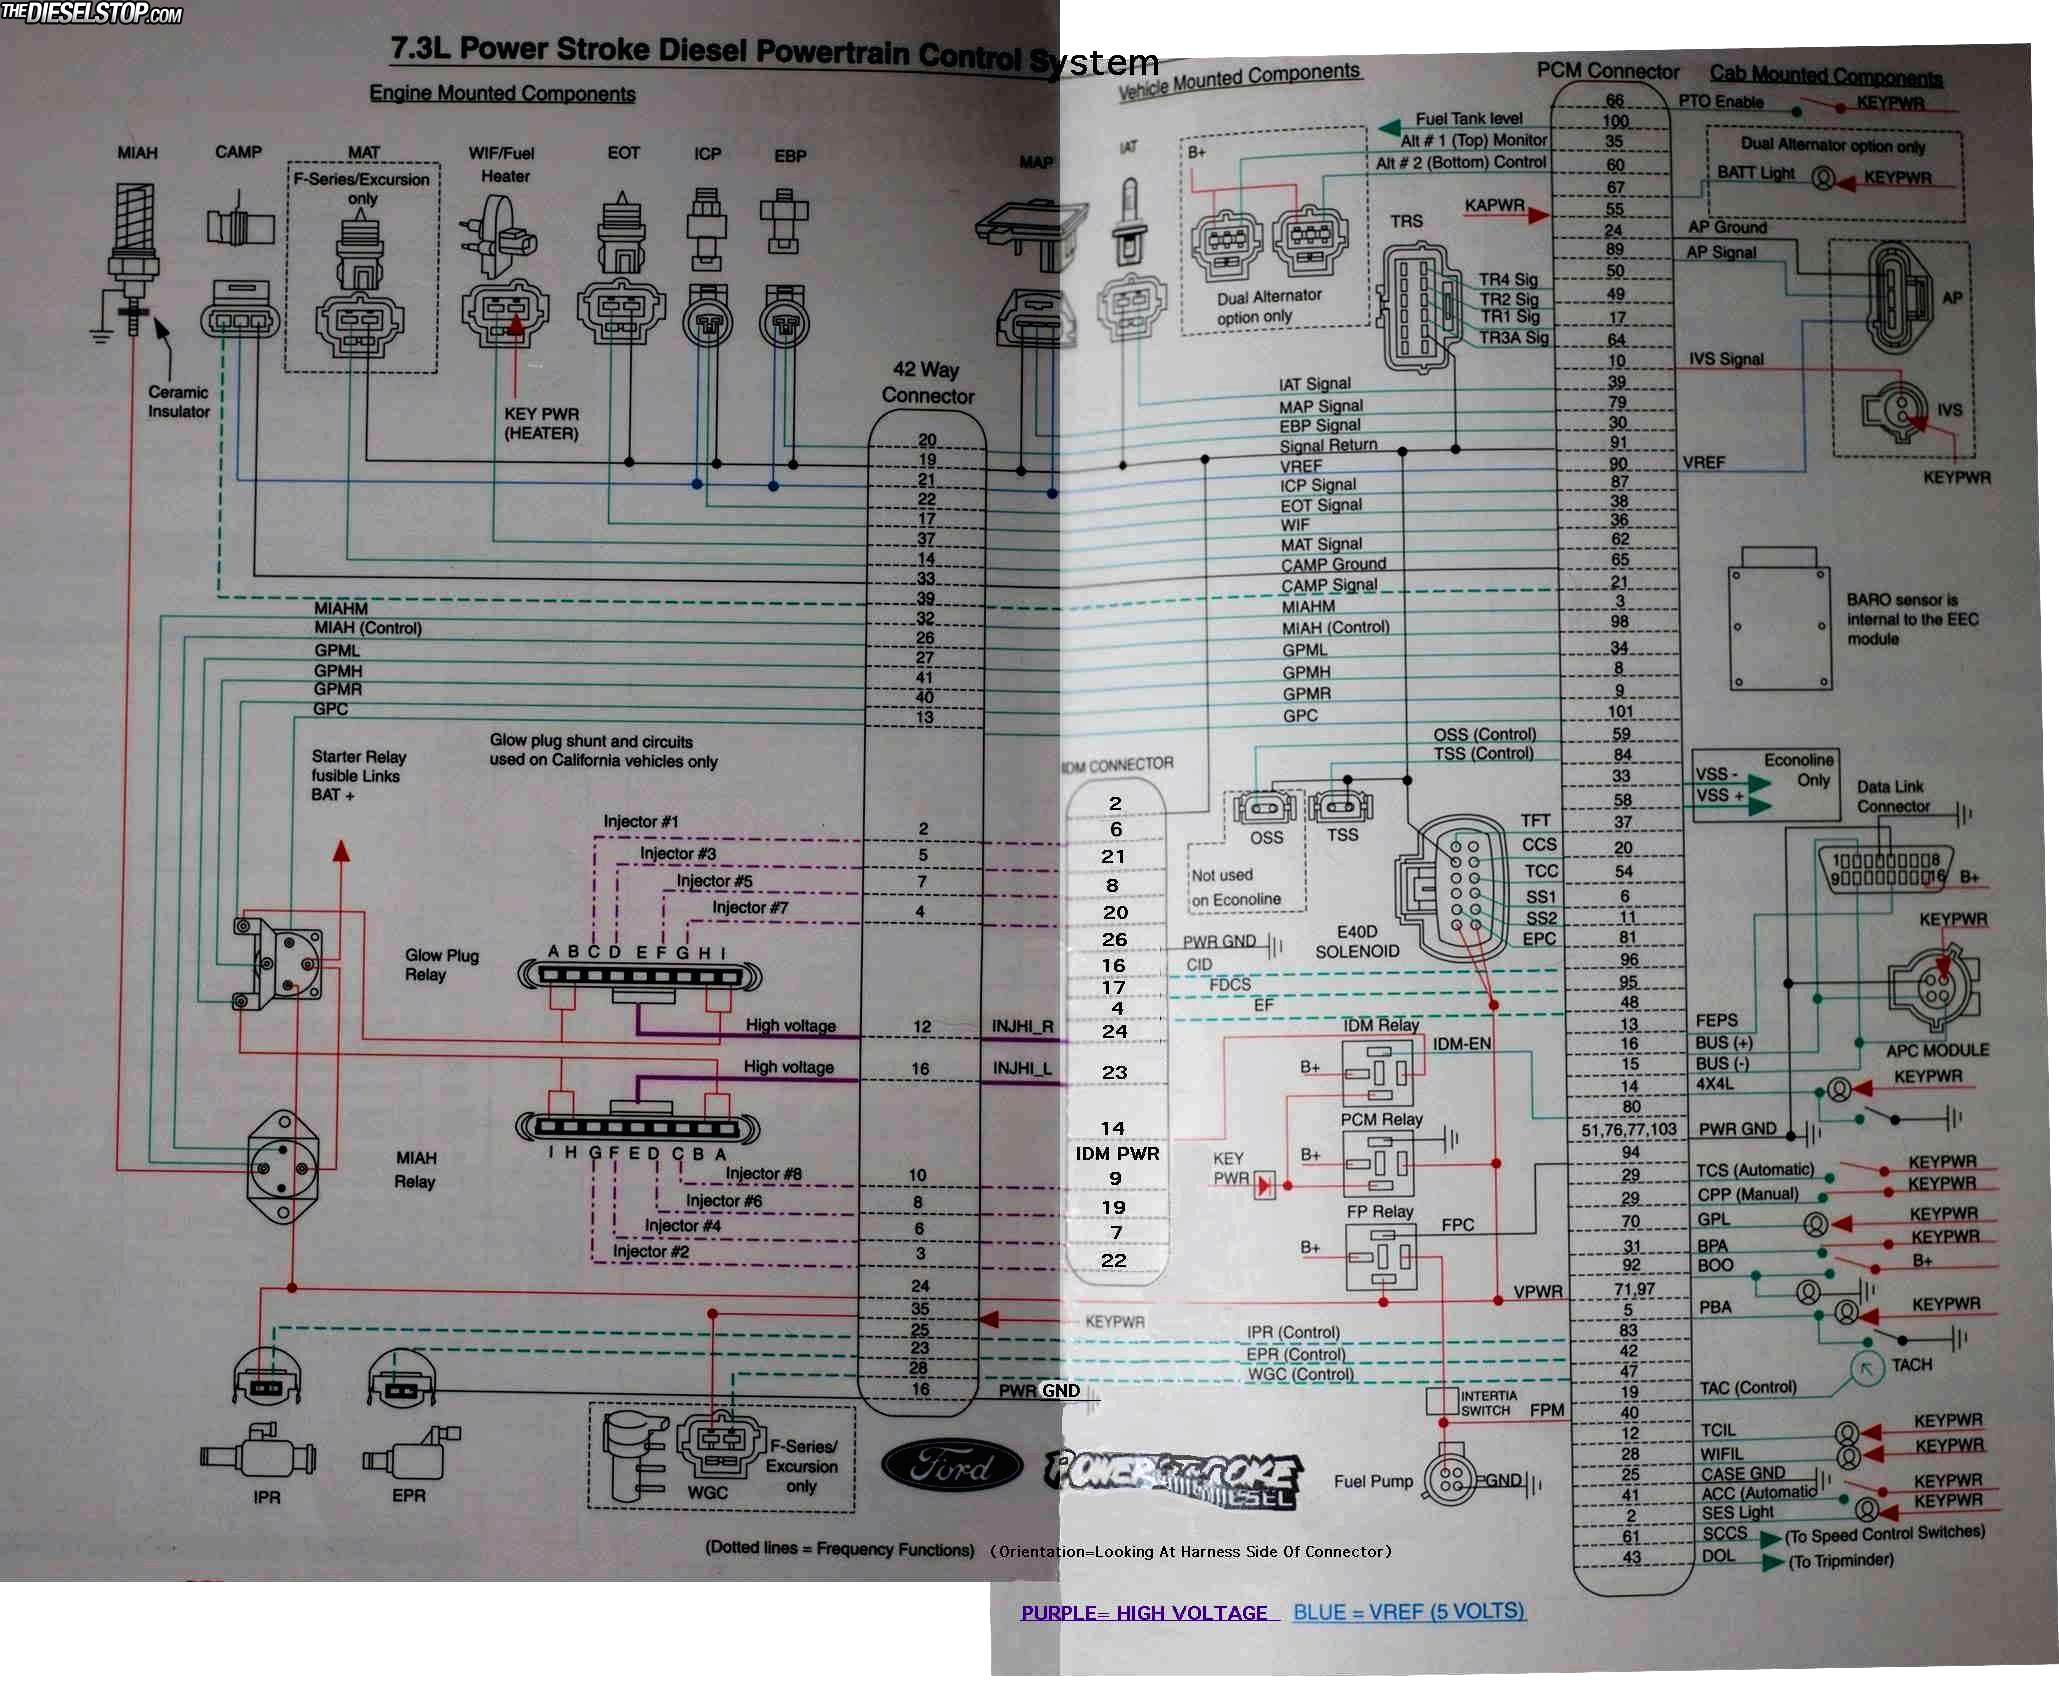 Wiring Diagram For Peterbilt The Wiring Diagram - Gmc jimmy wiring harness